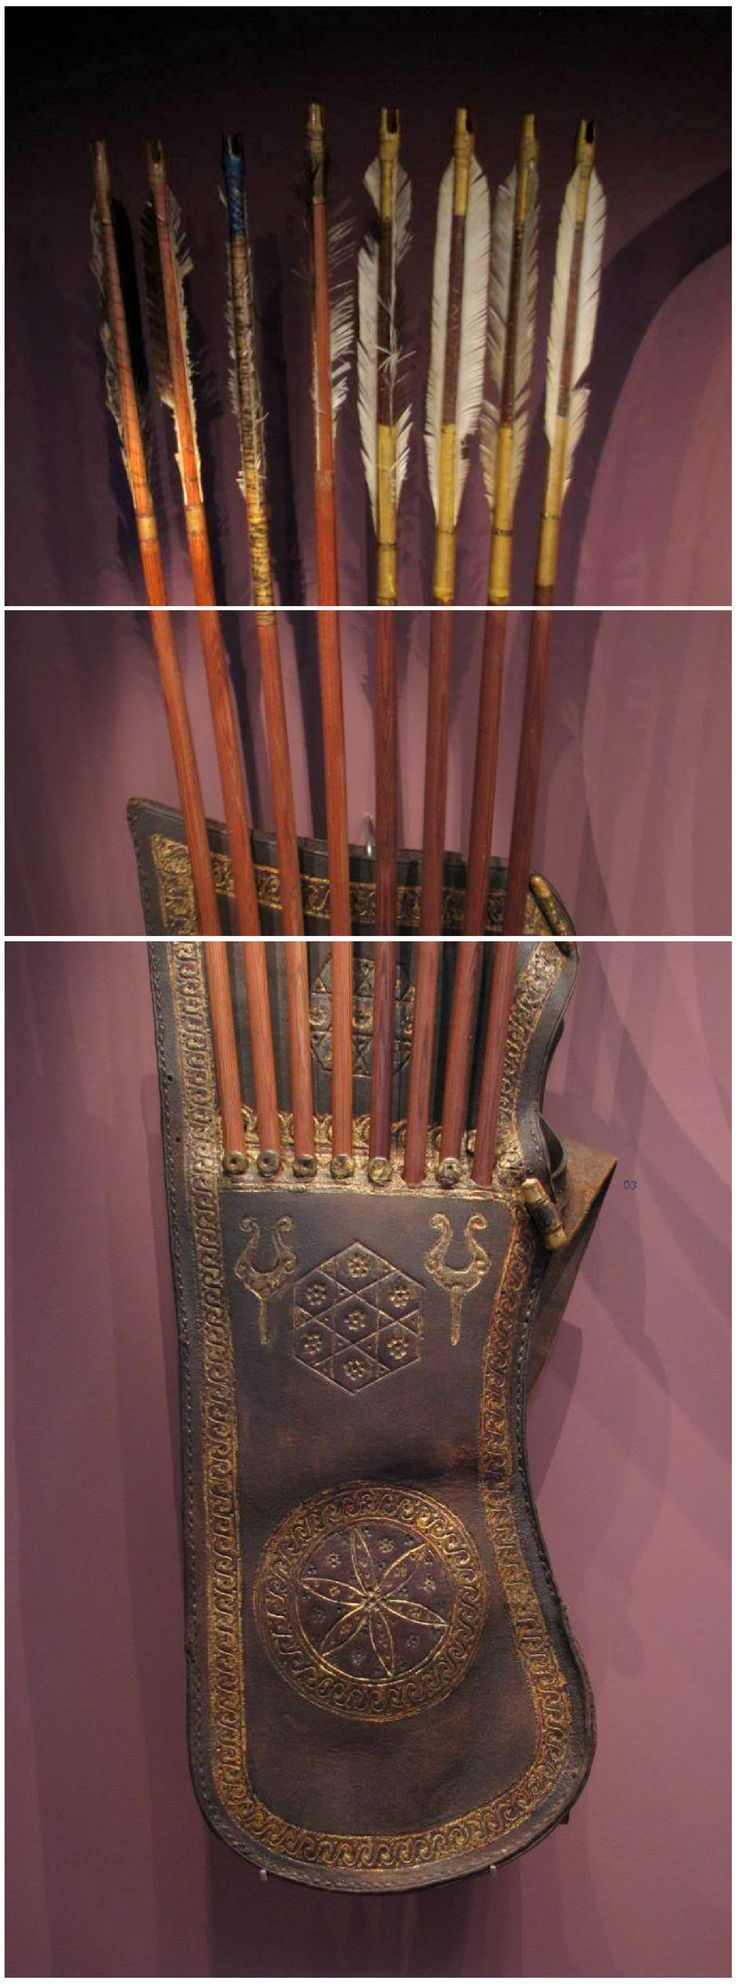 17. yüzyıl Osmanlı tirkeş ve oklar, Nürnberg, Almanya 17th century Ottoman quiver and arrows, Nürnberg, Germany